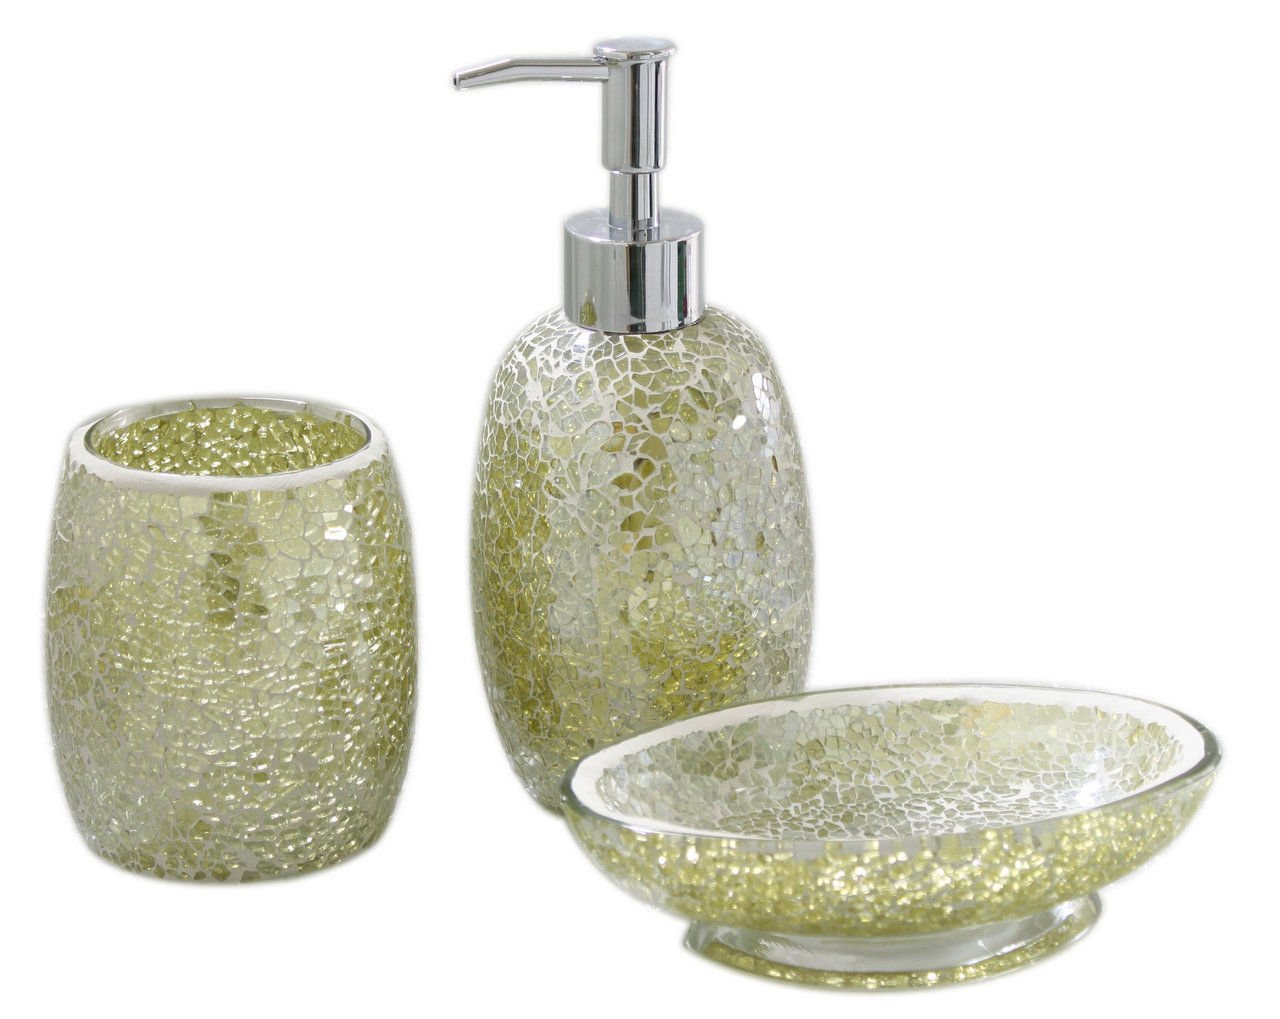 3pc Modern Pistachio Green Sparkle Mosaic Glass Bathroom Accessory Set  Decoration: Amazon.co.uk: Kitchen U0026 Home